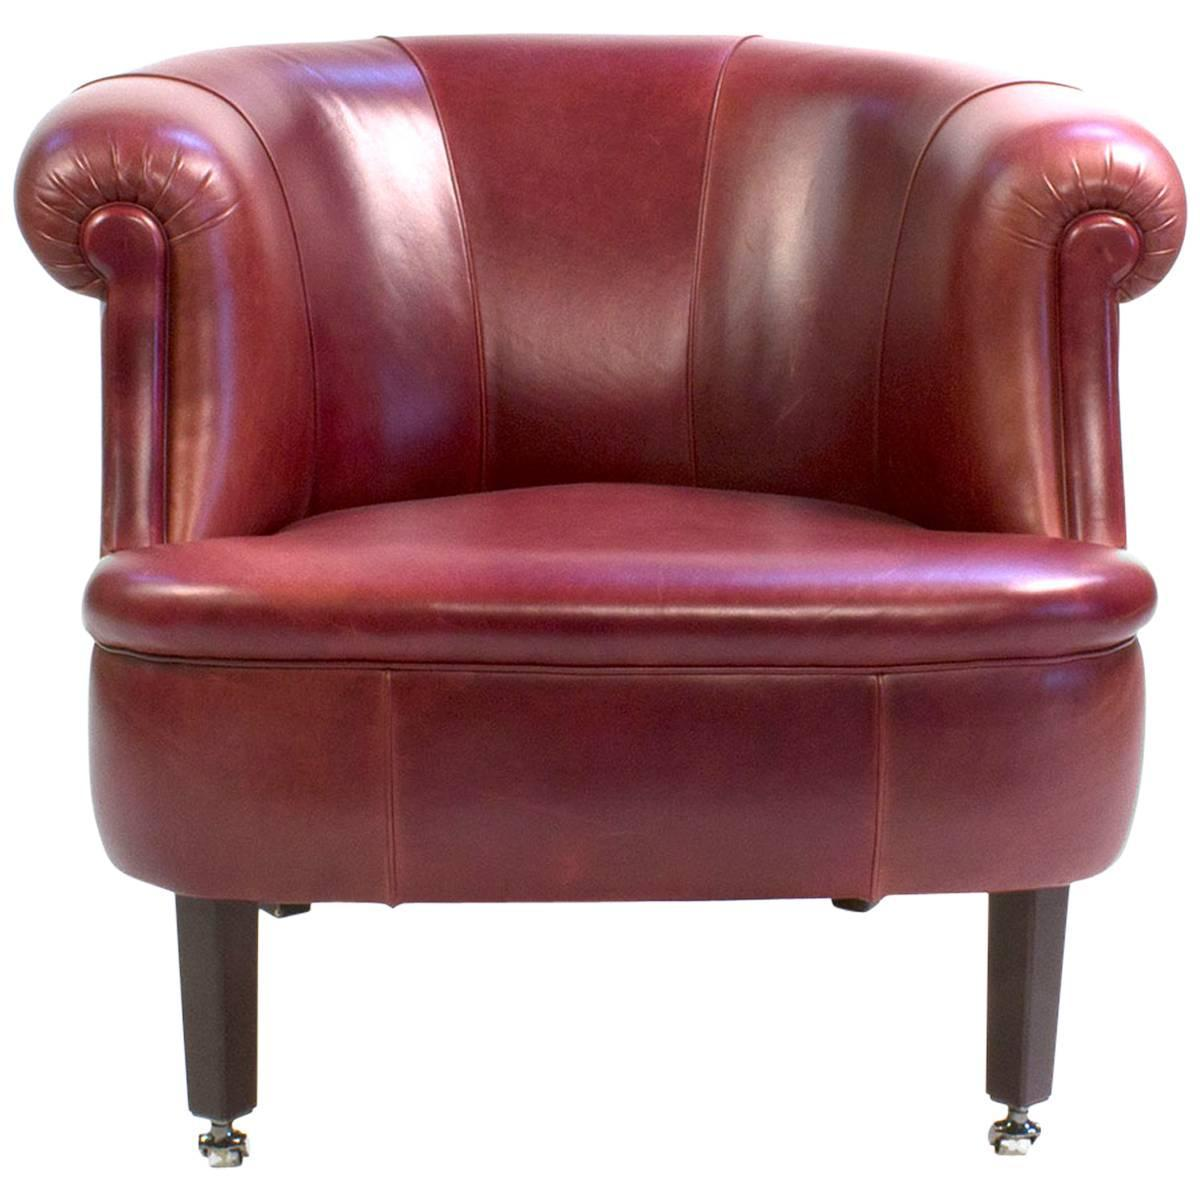 red leather poltrona frau lyra club armchair by renzo frau modern italy for sale at 1stdibs. Black Bedroom Furniture Sets. Home Design Ideas